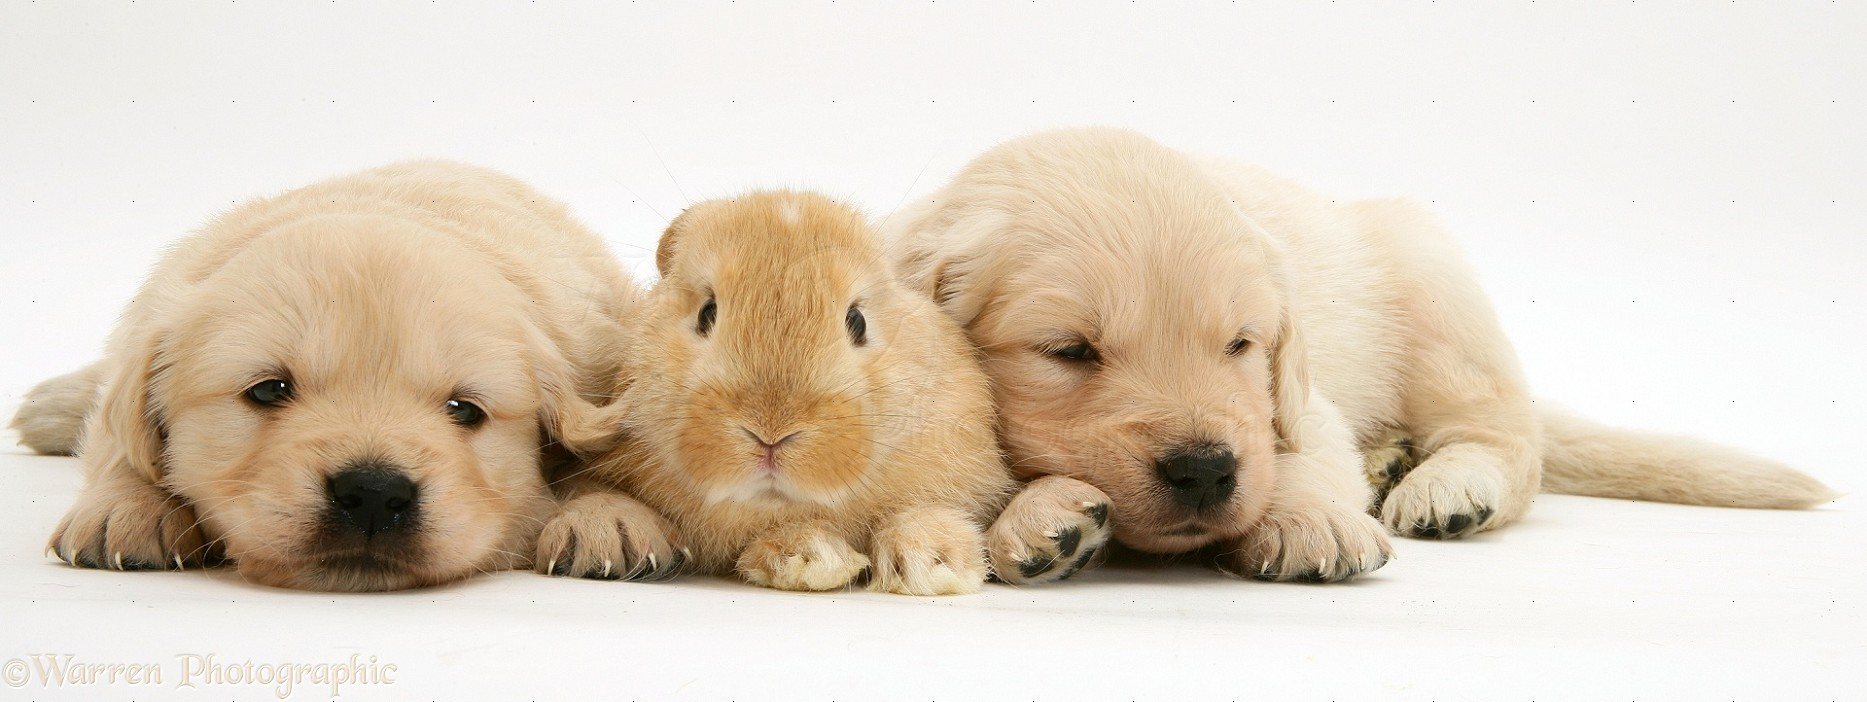 Baby sandy Lop rabbit with Golden Retriever pups photo - WP10581